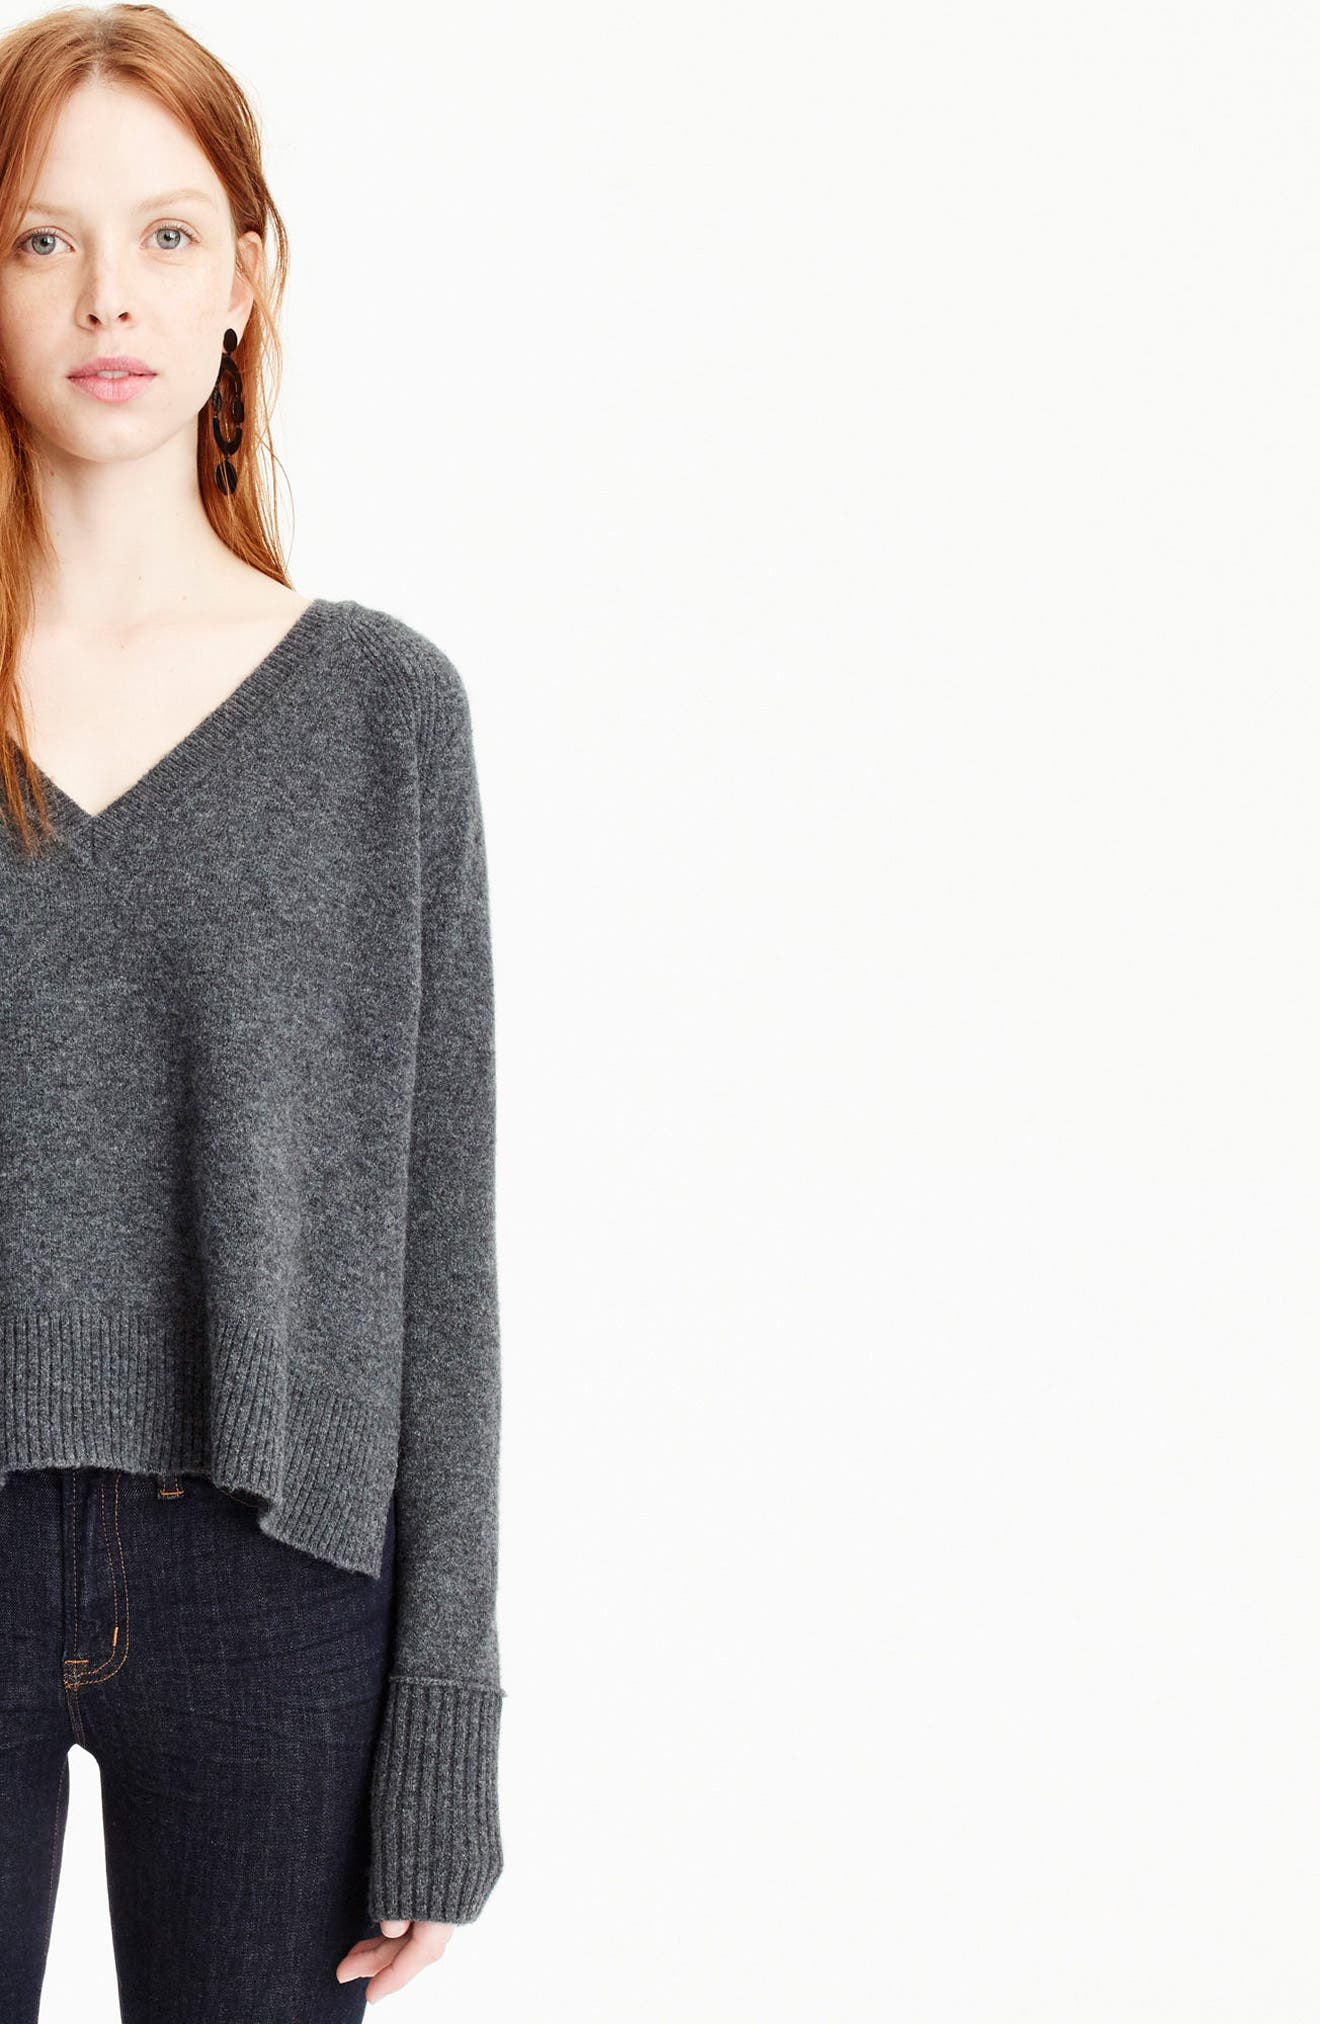 J.Crew Supersoft Yarn V-Neck Sweater,                             Alternate thumbnail 3, color,                             Heather Carbon